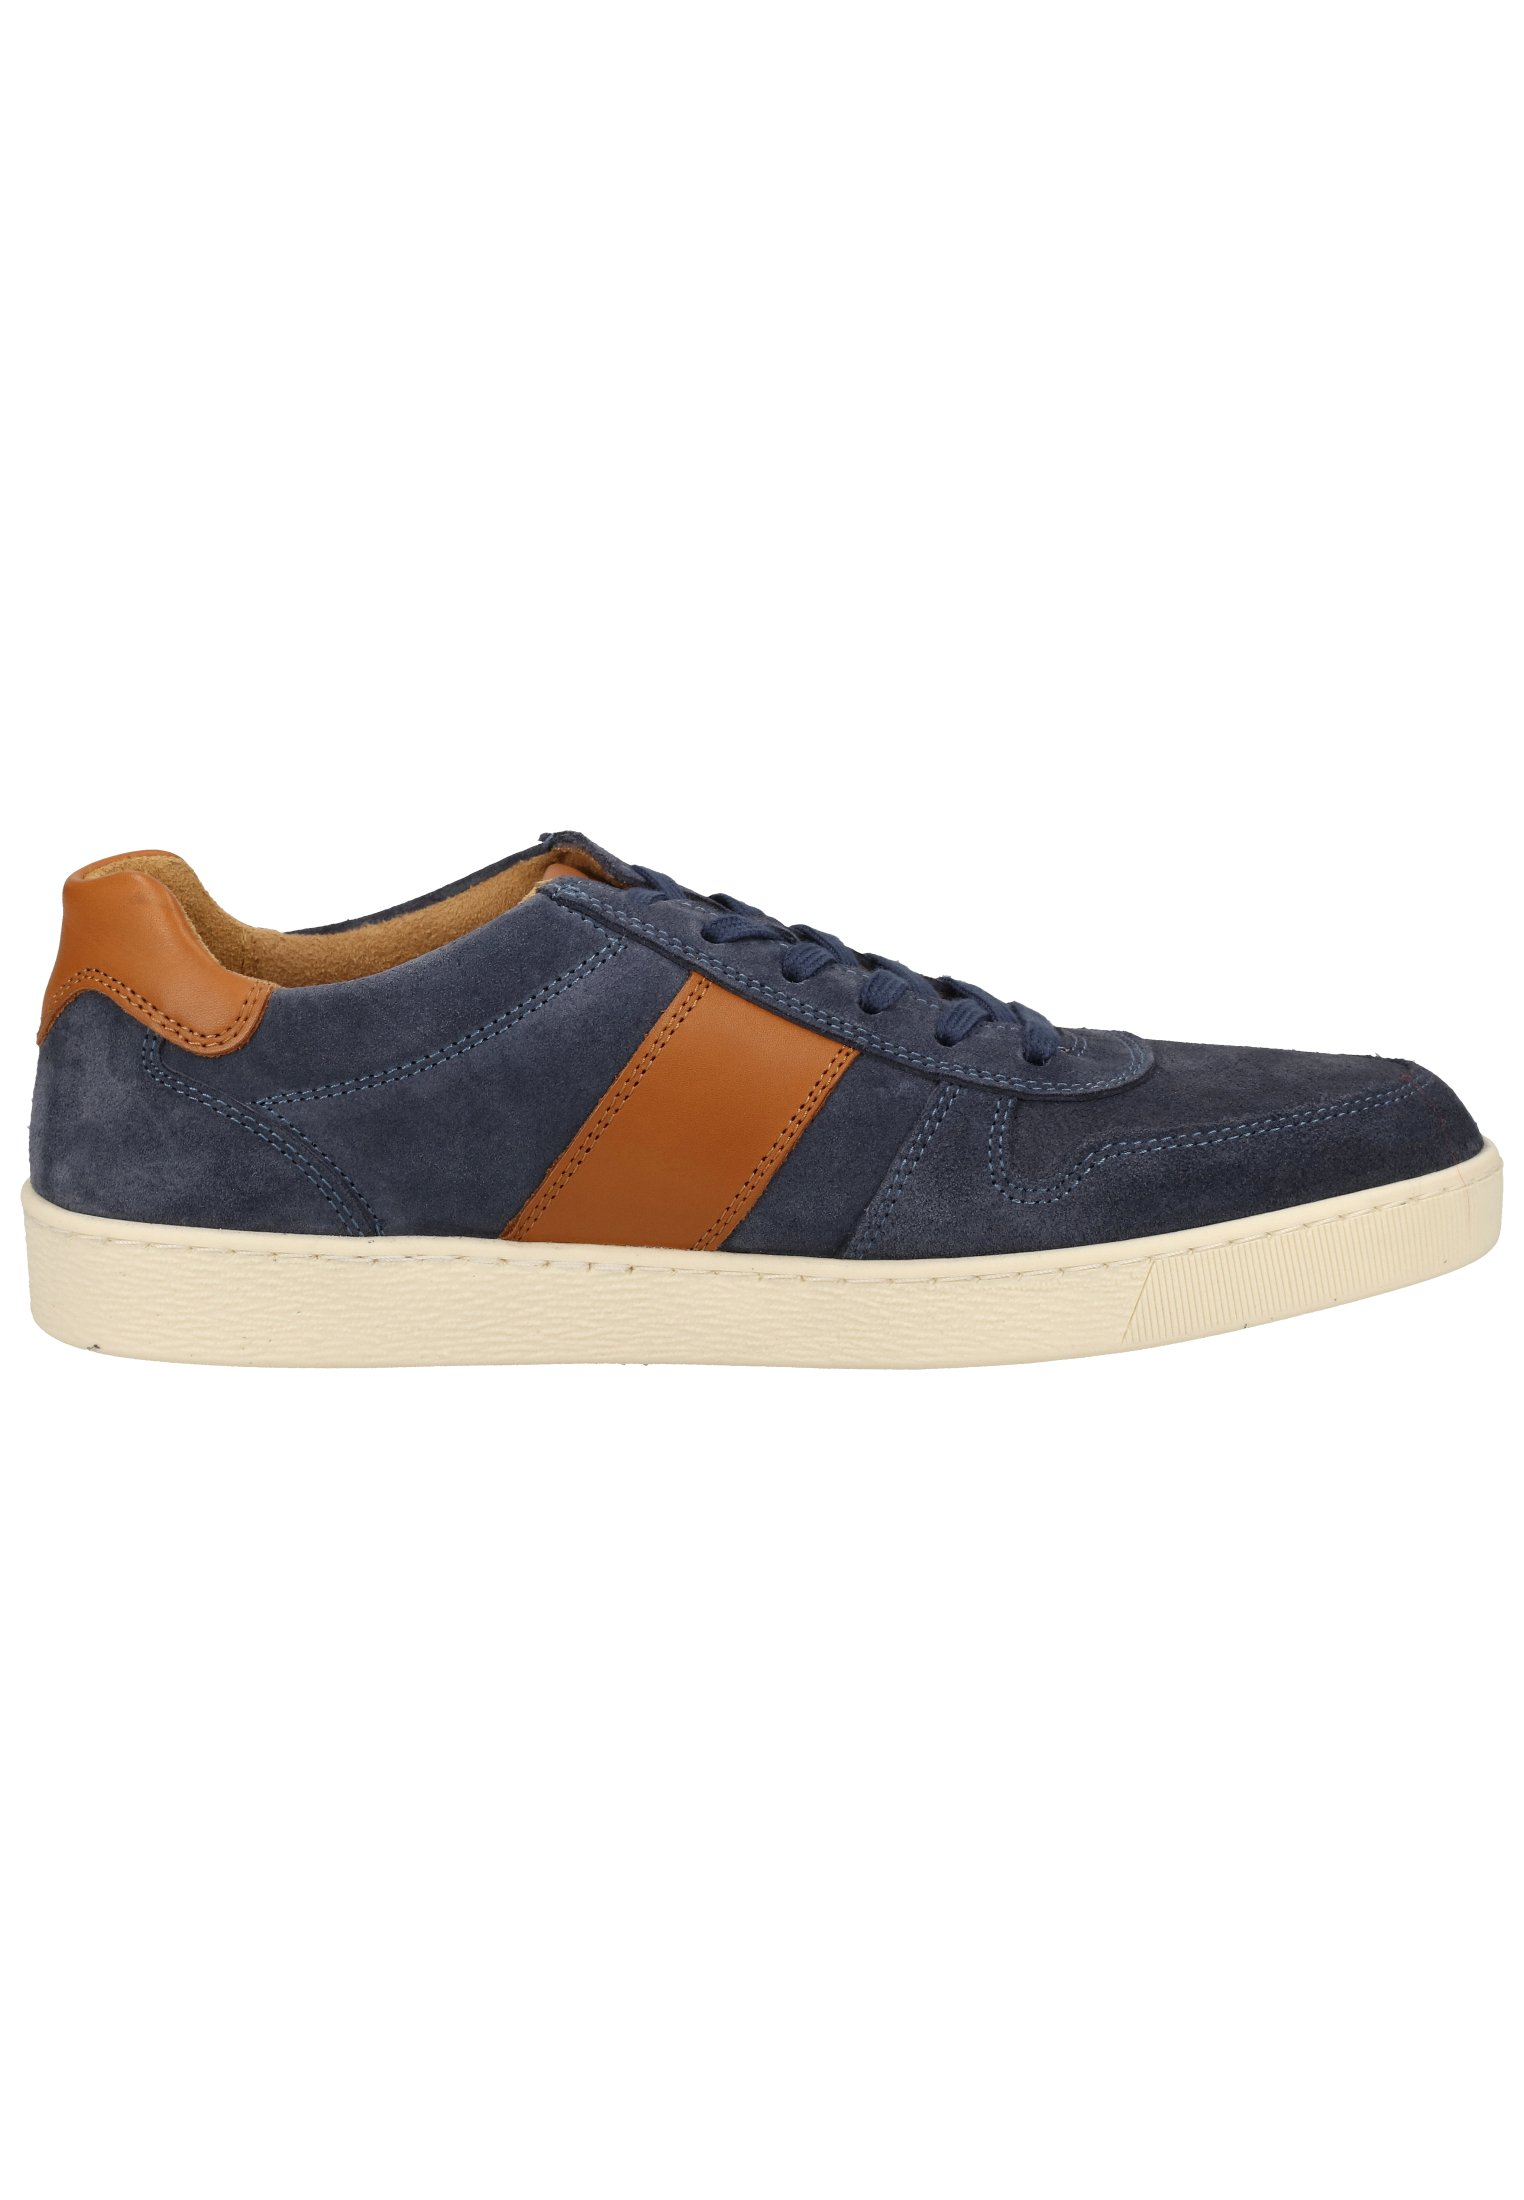 Camel Active Sneaker Low - Blue Black Friday